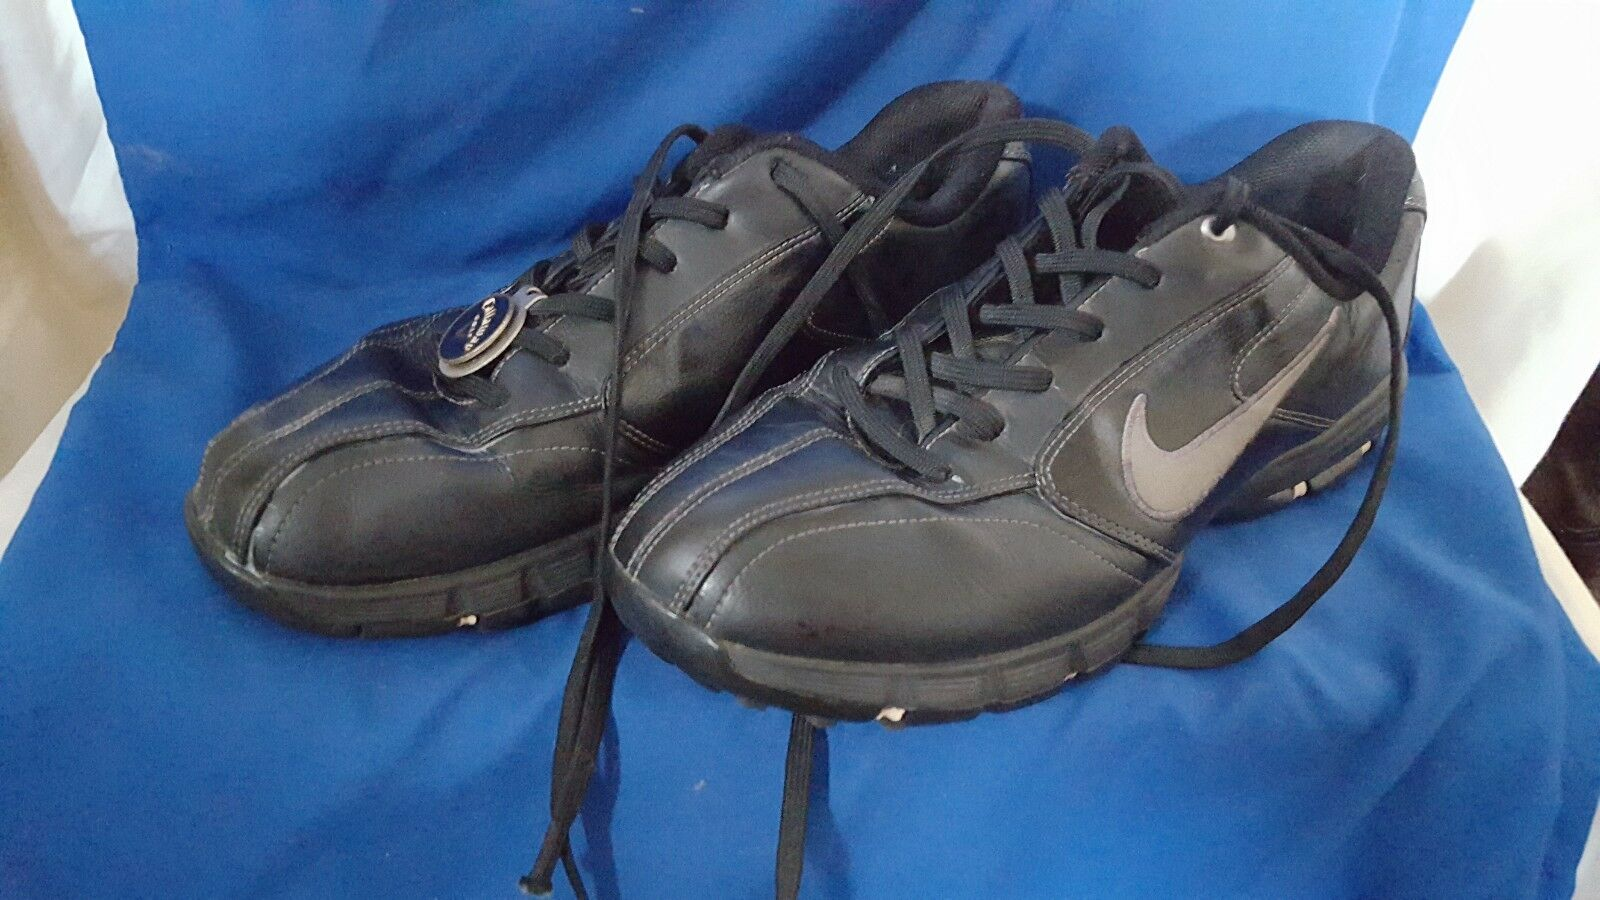 NIKE AIR SPORT PERFORMANCE MENS Athletic Golf Cleats Shoes Size 8  317447-001 for sale online